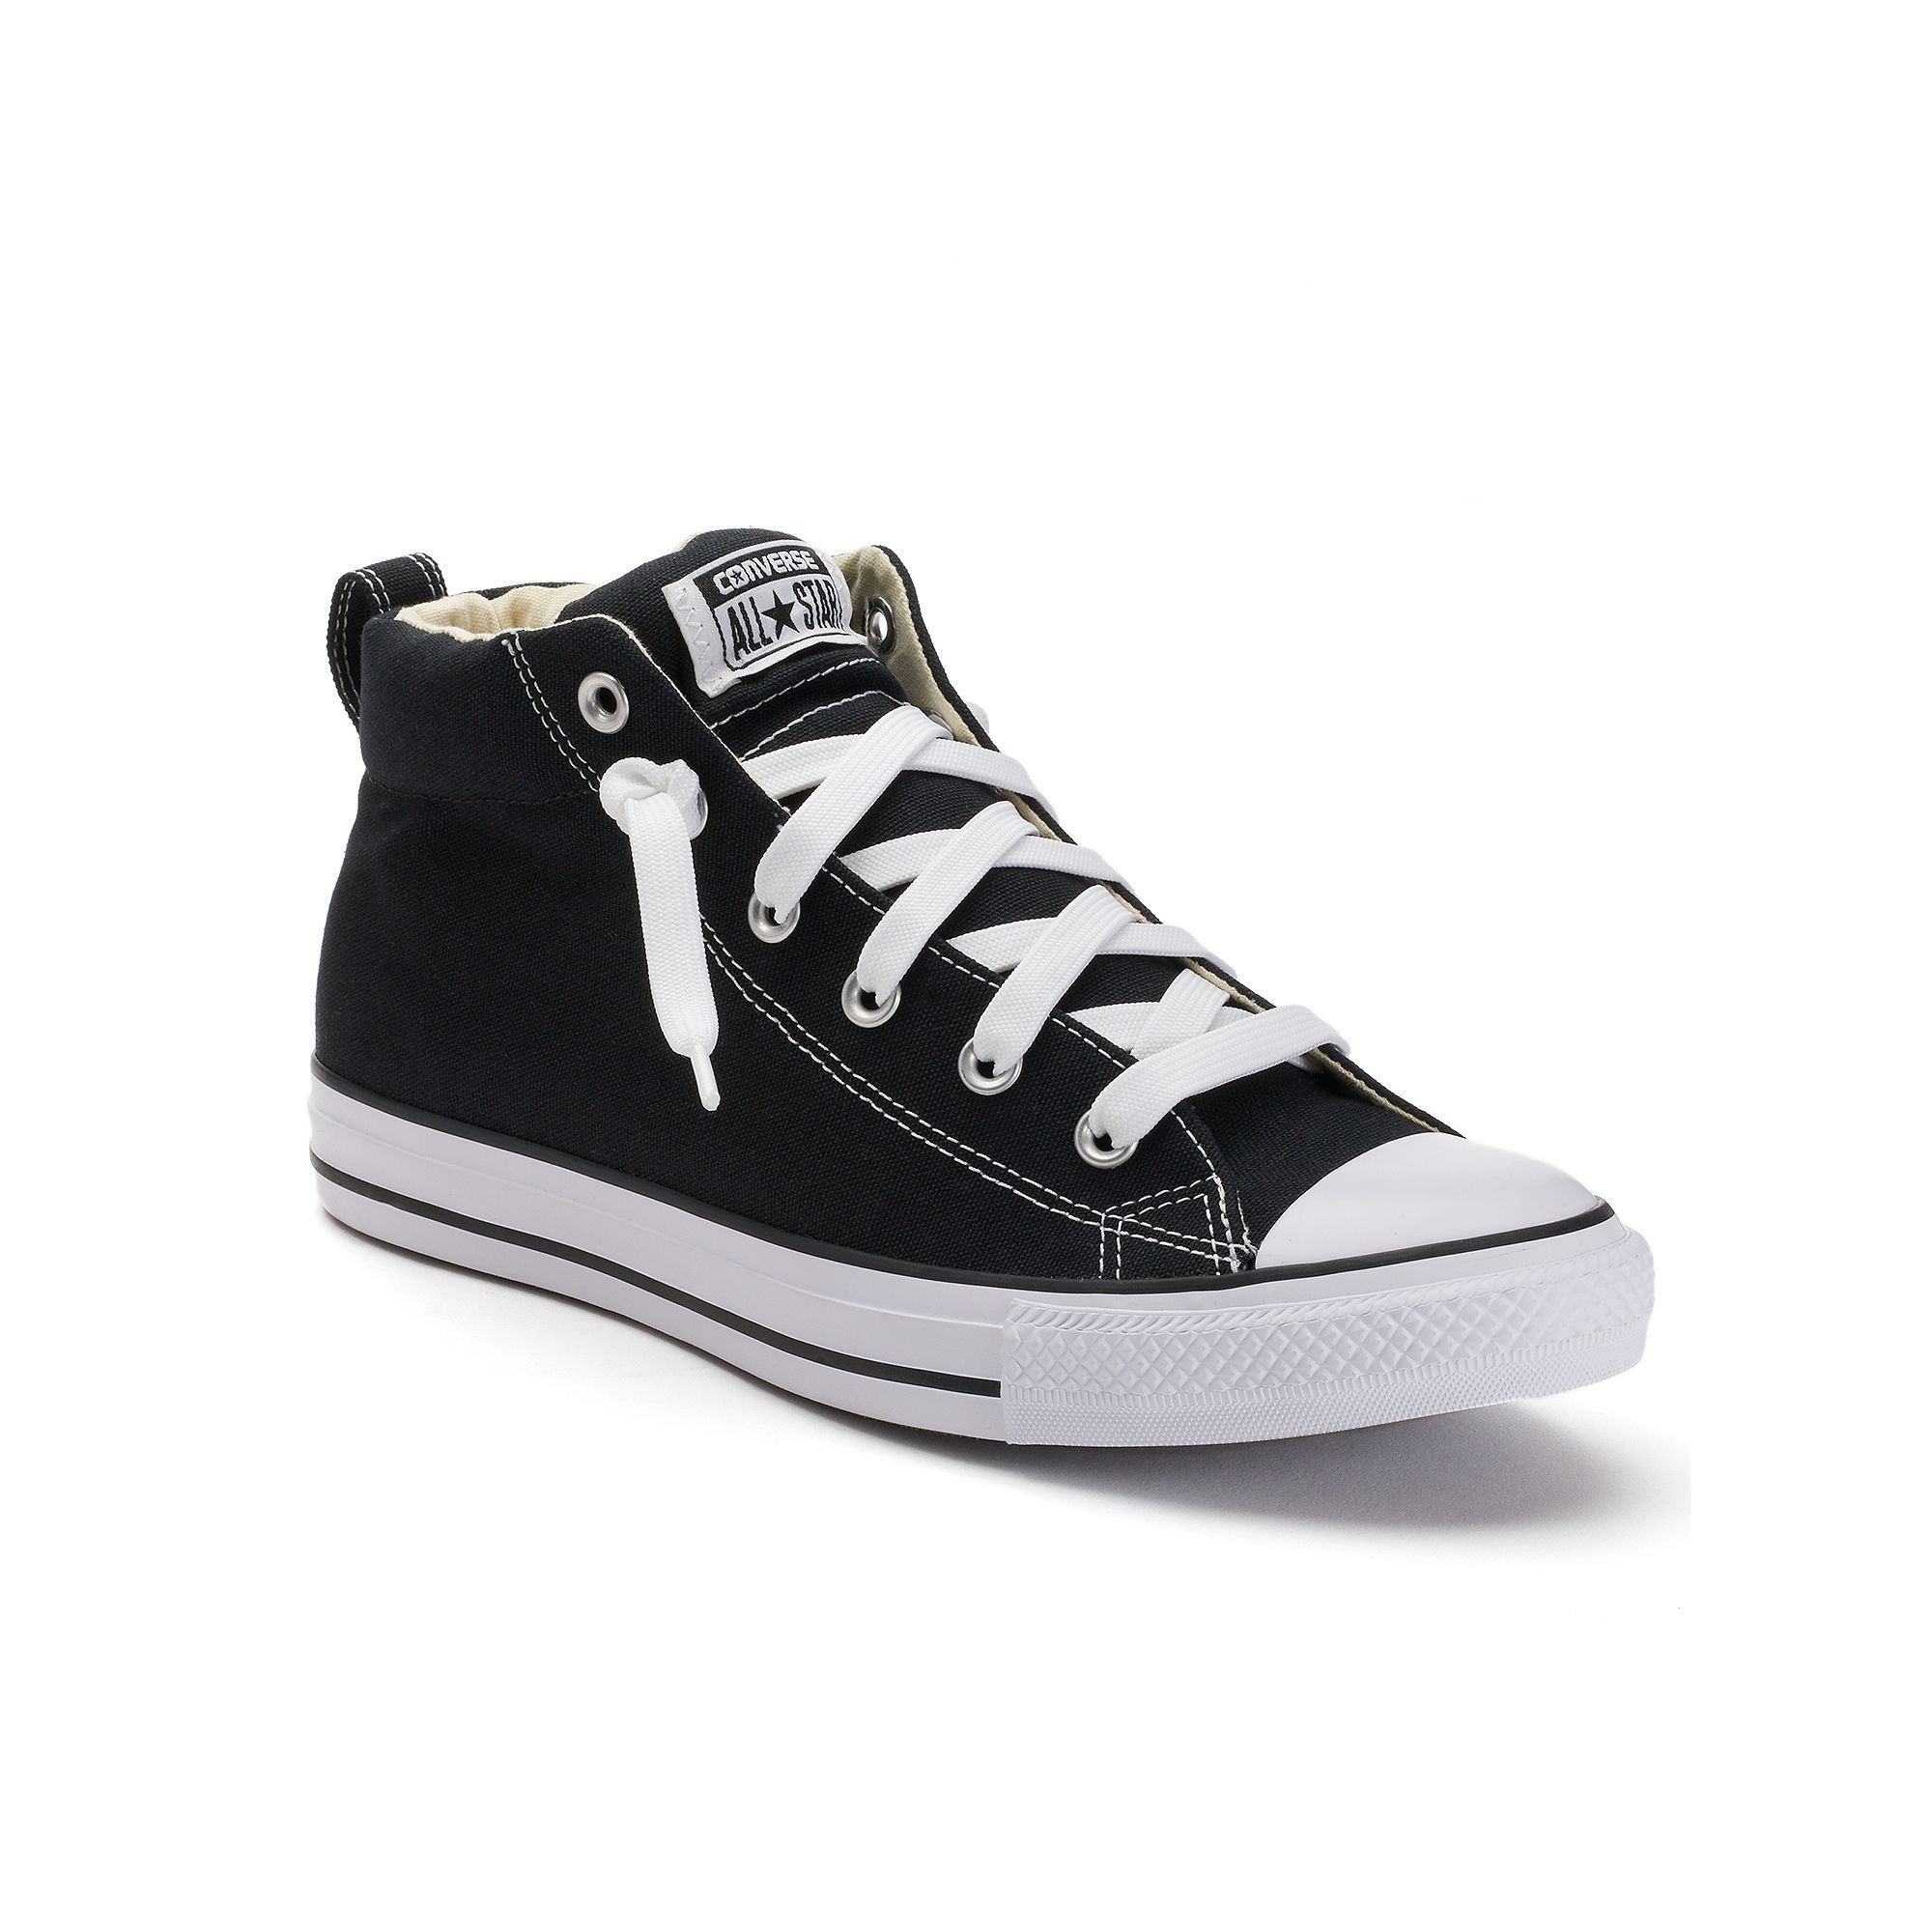 fbe48cc74fef Adult Converse All Star Chuck Taylor Street Mid-Top Sneakers